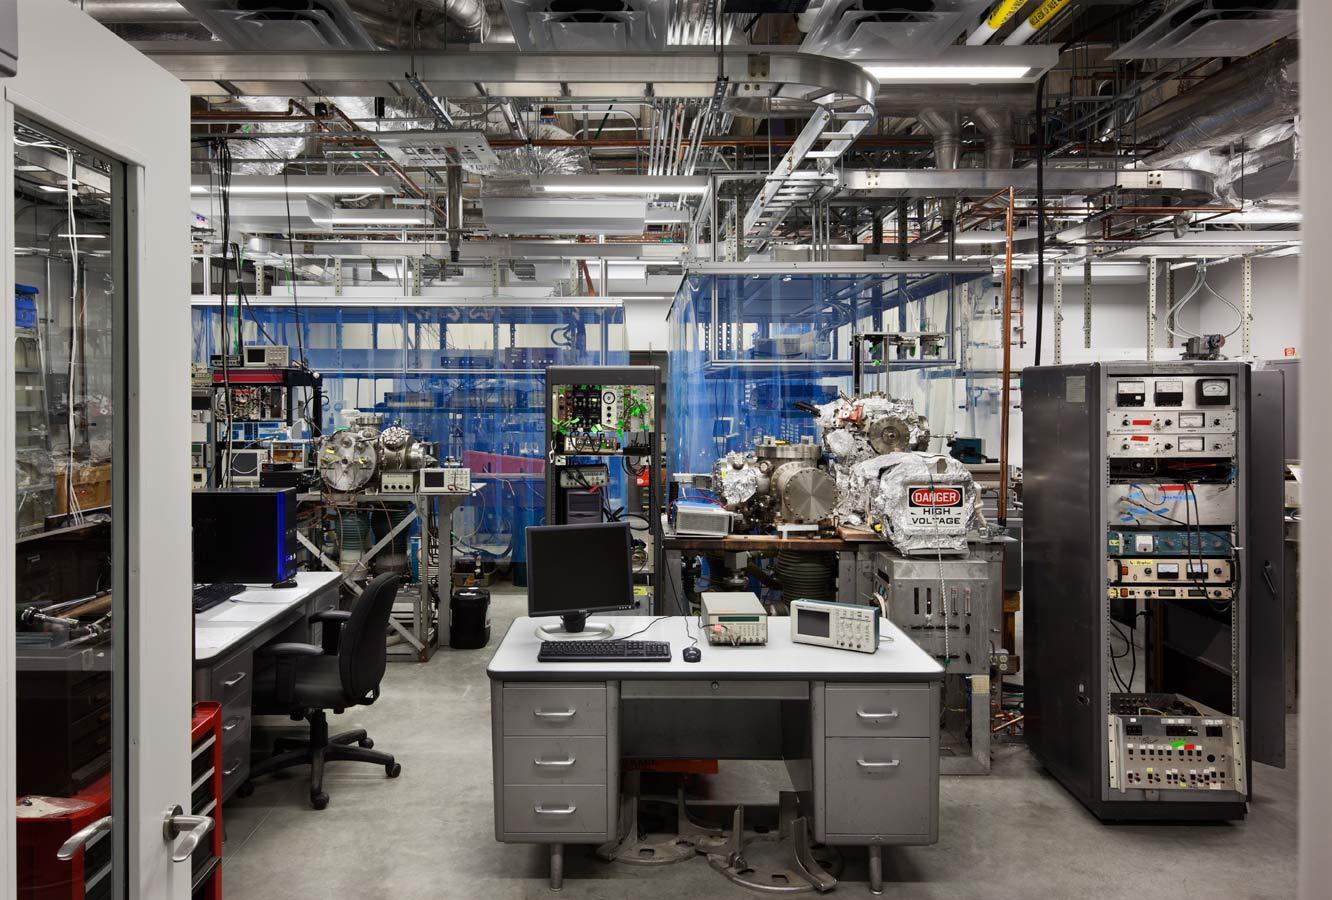 <p>Researchers perform sensitive physics experiments in a highly stabilized basement lab protected from humidity and vibrations. The laboratories were designed to meet the needs of Rice's present researchers, with the flexibility to accommodate future generations. <br><small>&copy; Peter Aaron/OTTO</small></p>